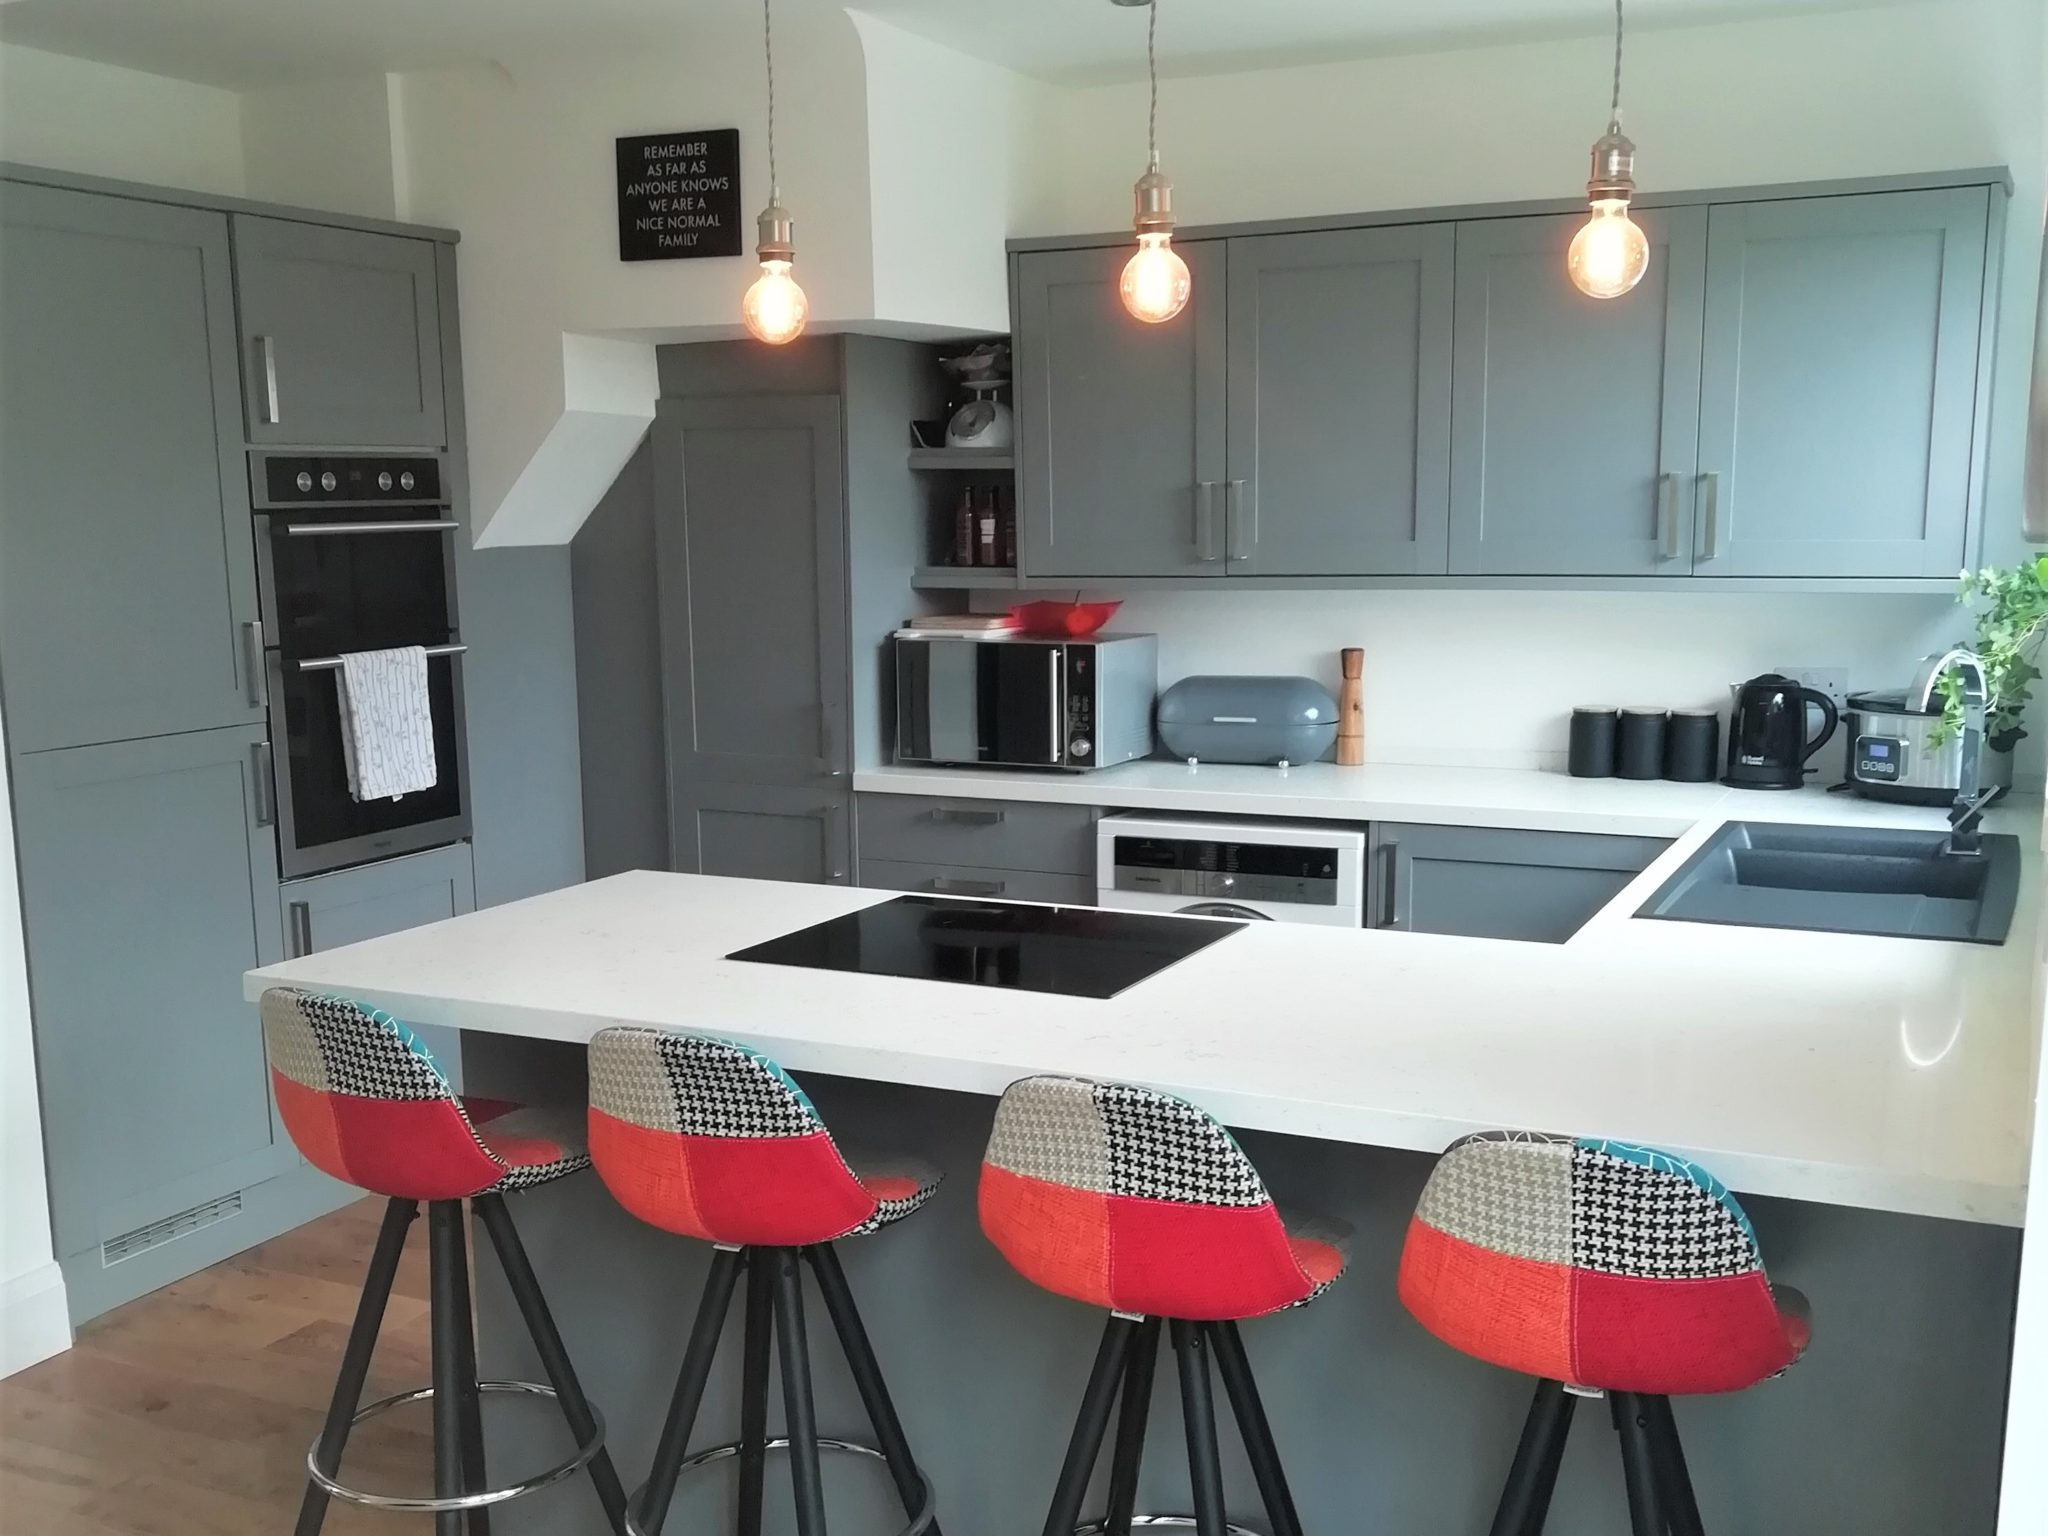 'Kid-proof' kitchen surface for family home